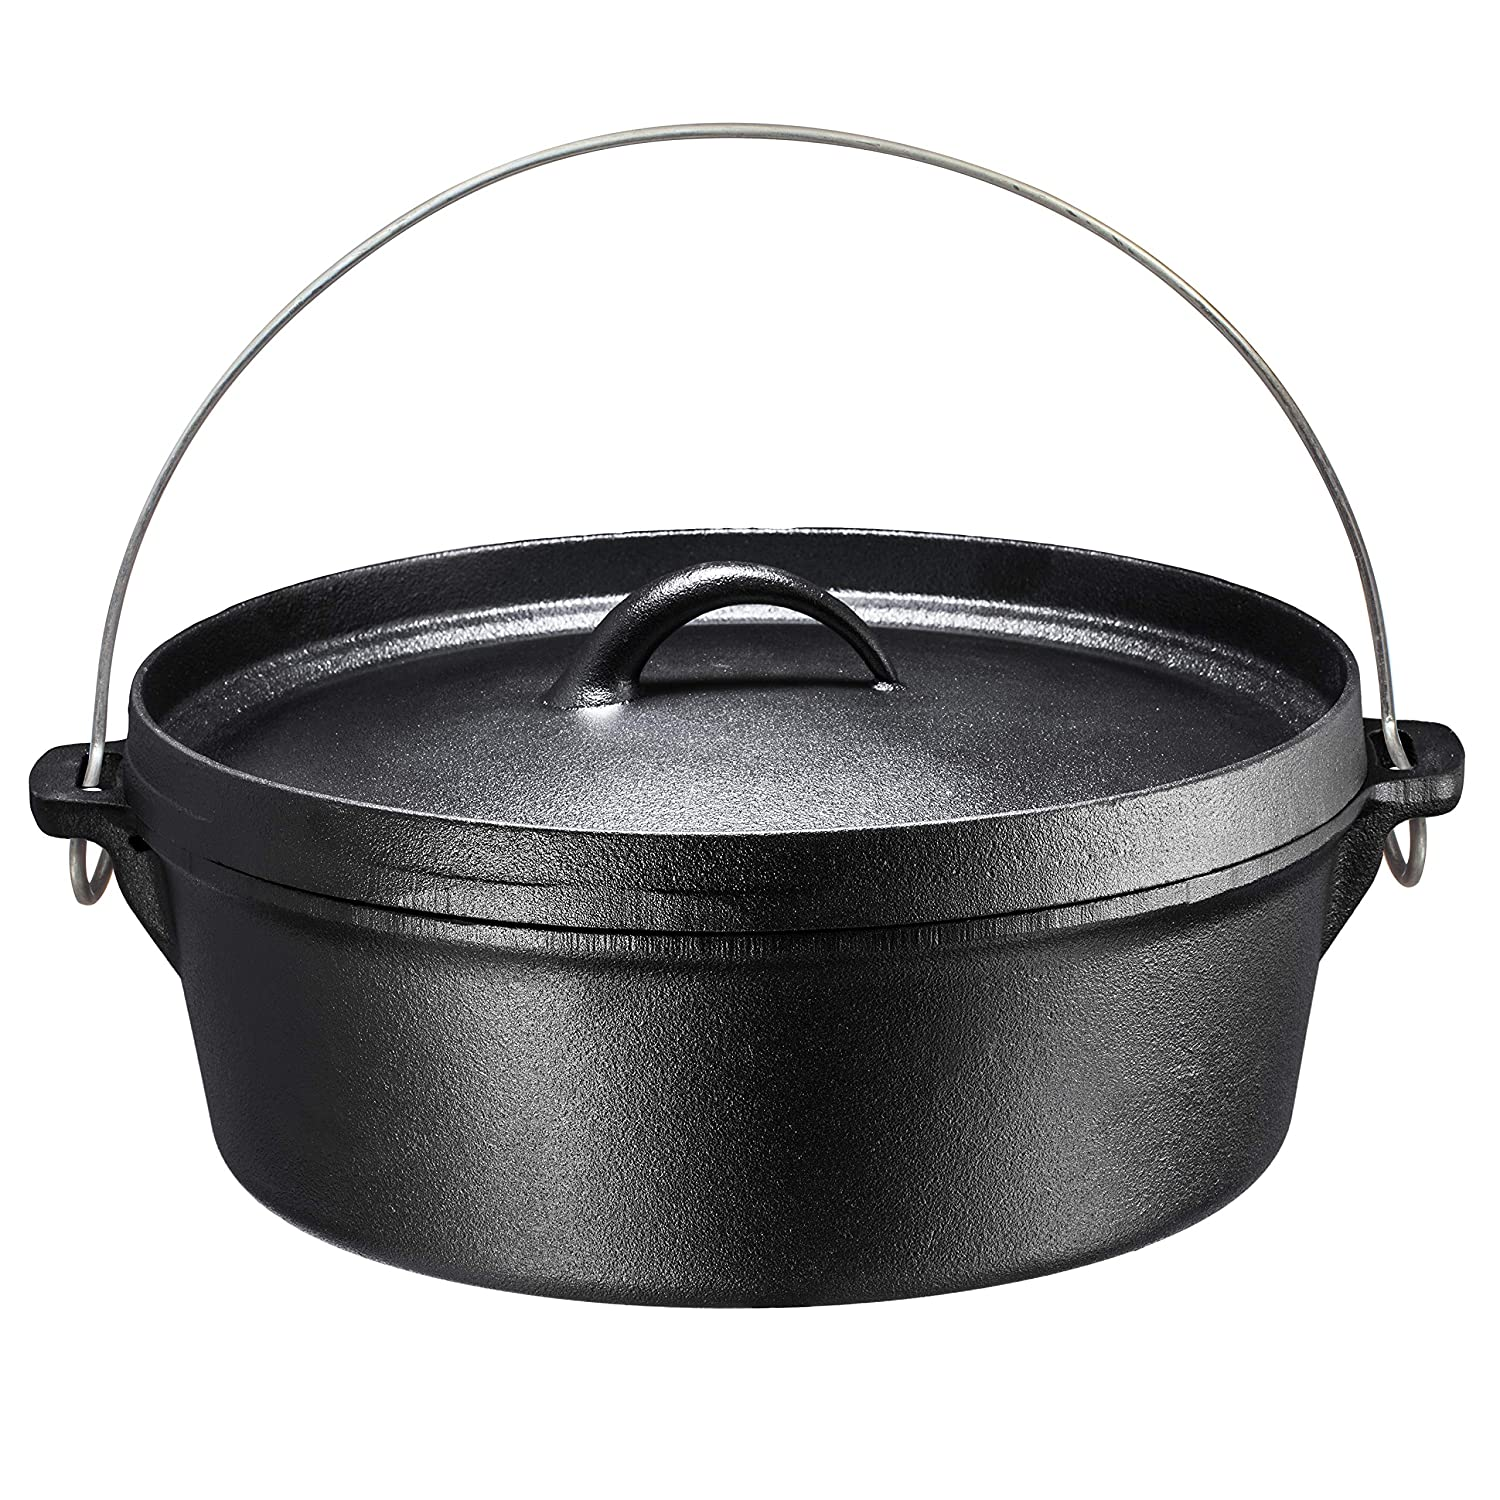 Bruntmor Pre-Seasoned Cast Iron Dutch Oven with Flanged Lid Iron Cover, for Campfire or Fireplace Cooking, Flat Bottom 6-Quart (6 Quart)